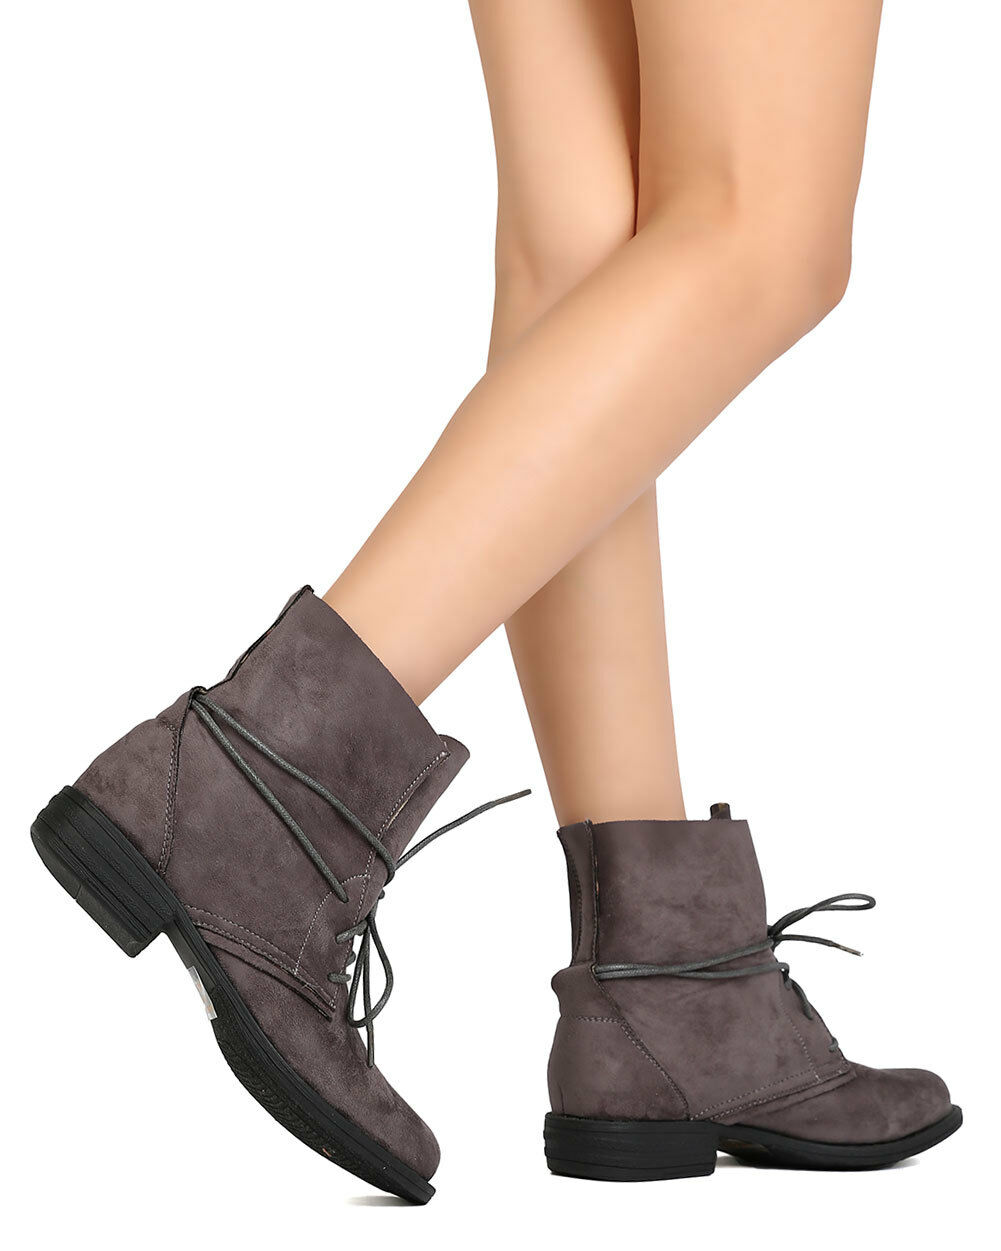 New Women Betani Sabrina-10 Faux Suede Flared Collar Wraparound Lace Up Bootie